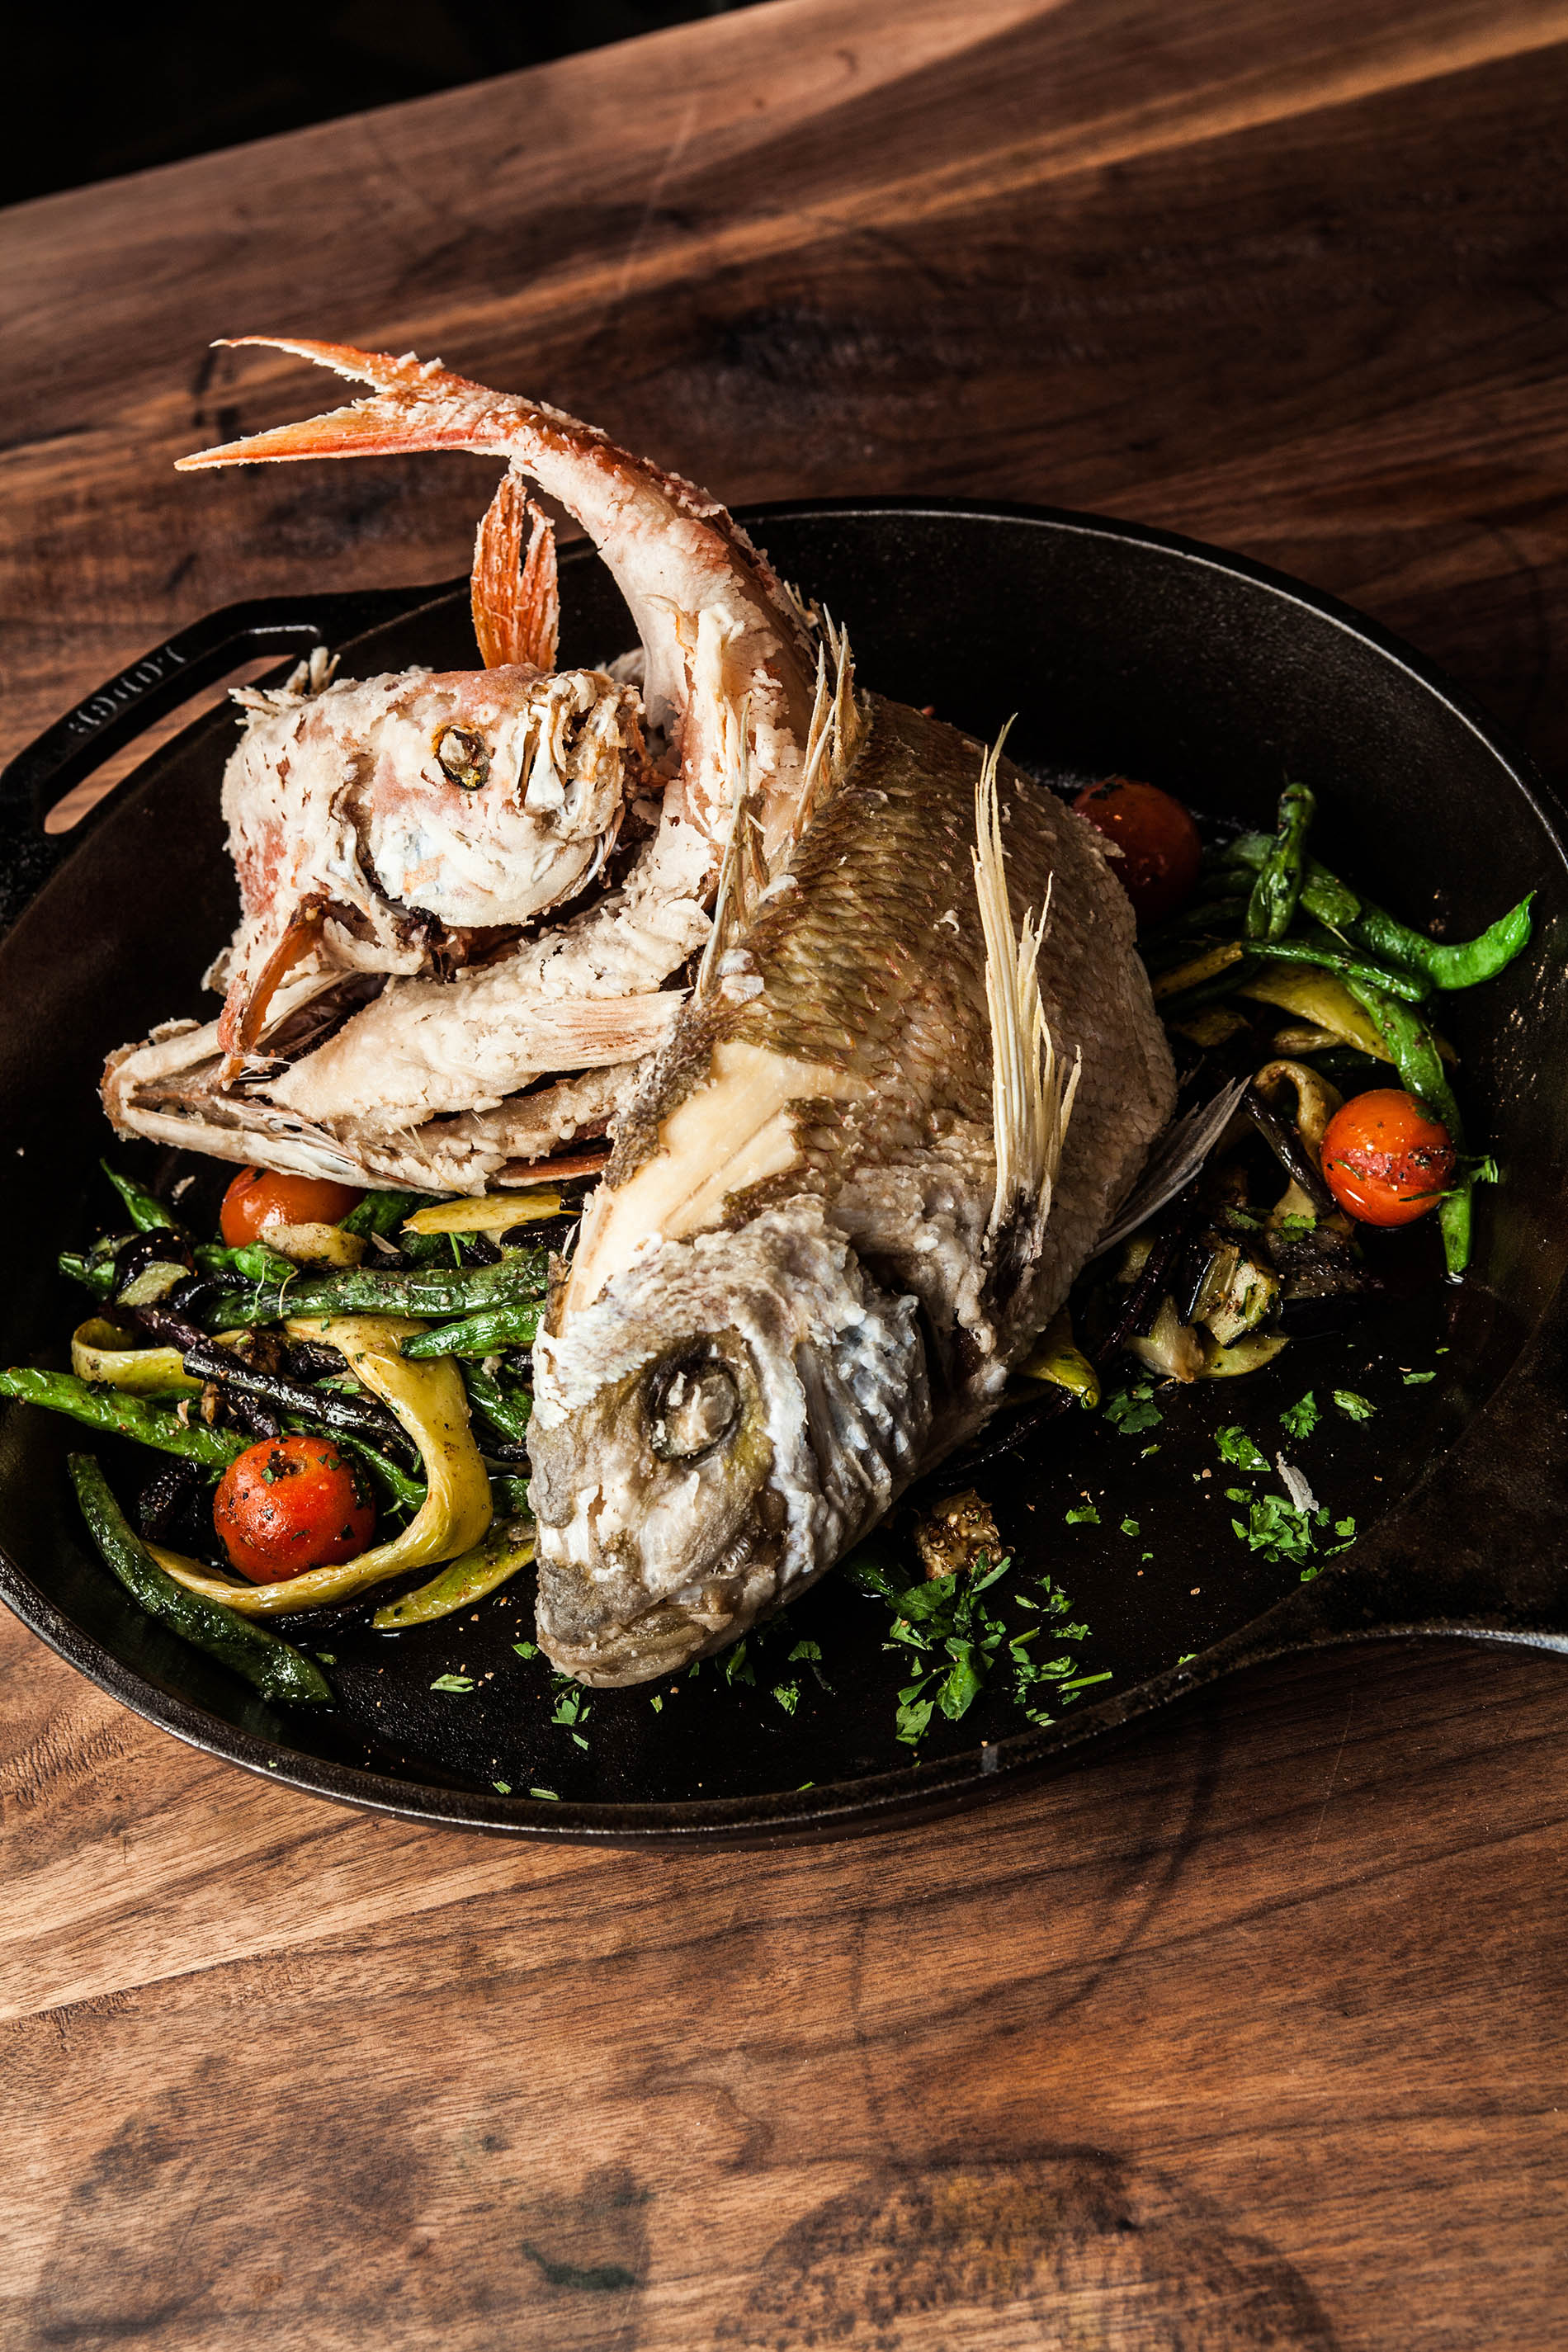 Crispy whole Vermillion snapper and long tail bass with masala vegetables. Photo courtesy of Julie Soefer Photography